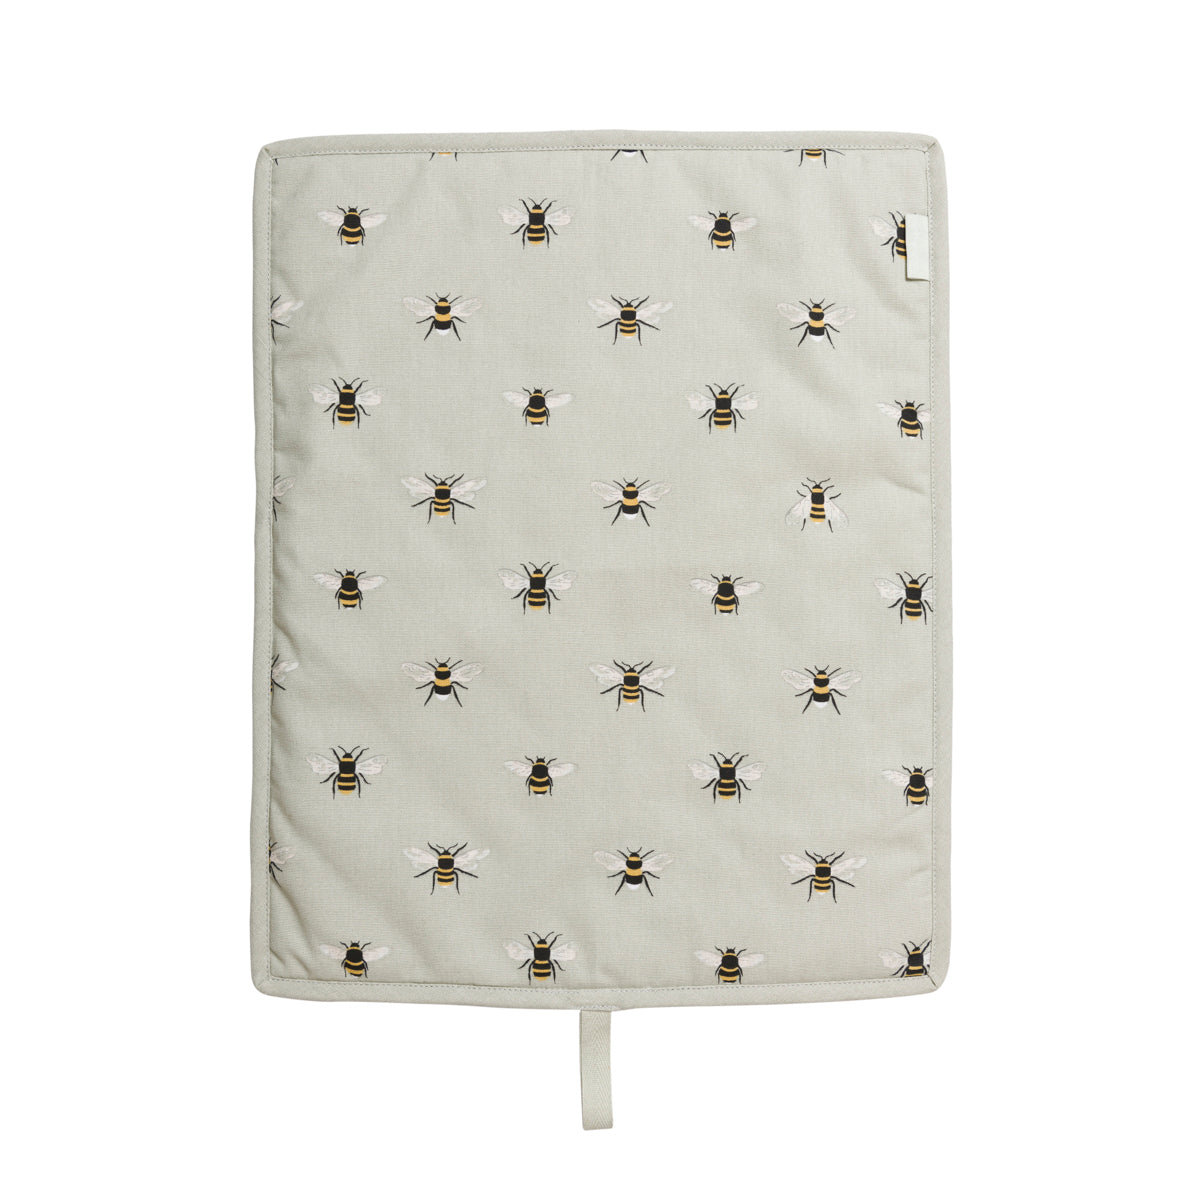 Bees buzz on a pale green background on Sophie Allport's Bee hob covers, perfect for Everhots.